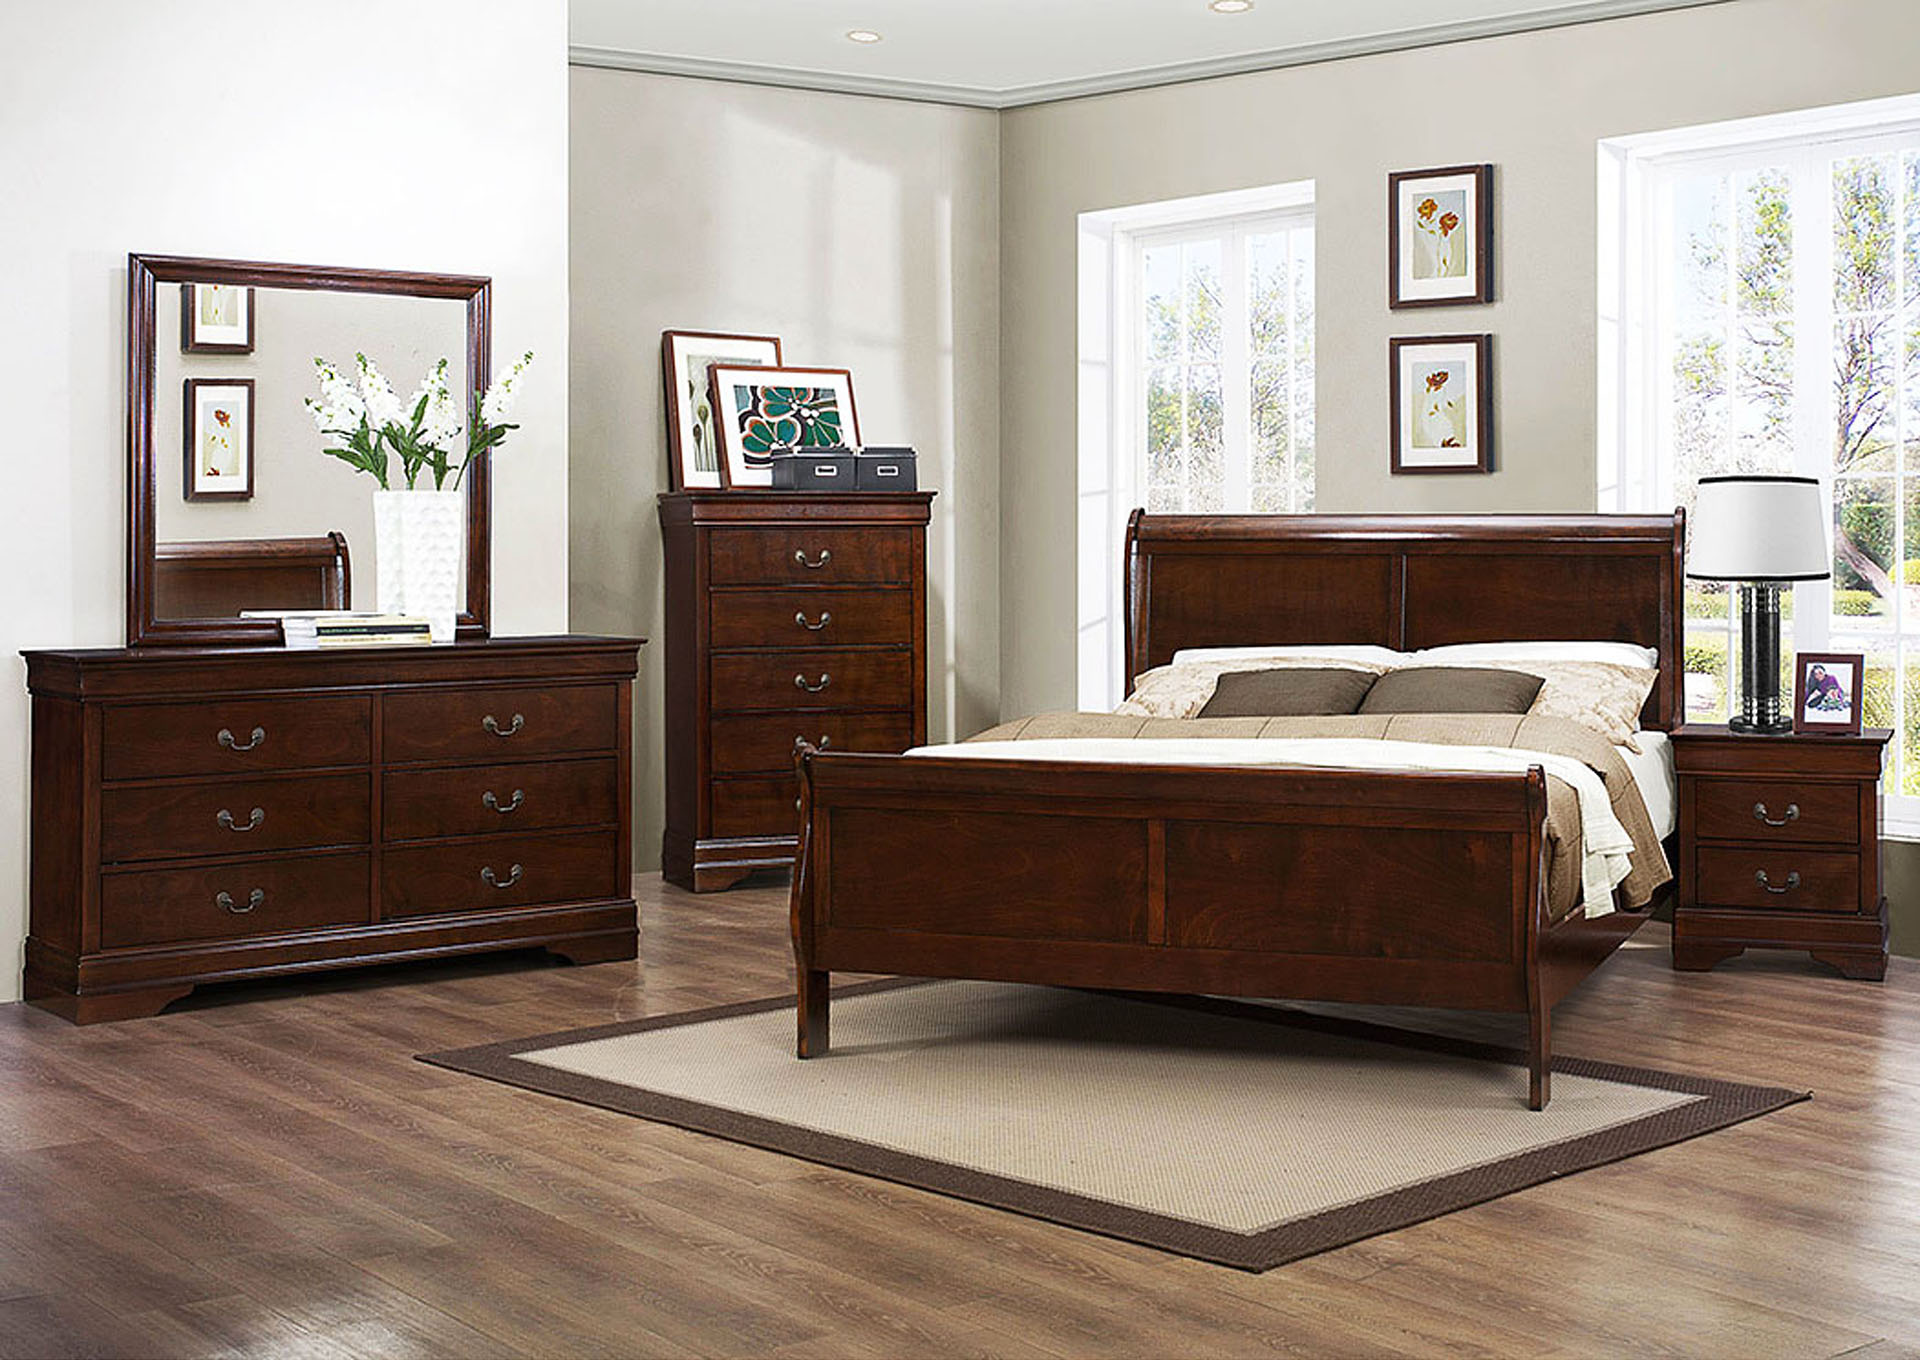 Mayville Burnish Brown Cherry Queen Sleigh Bed w/ Dresser, Mirror and Nightstand,Homelegance